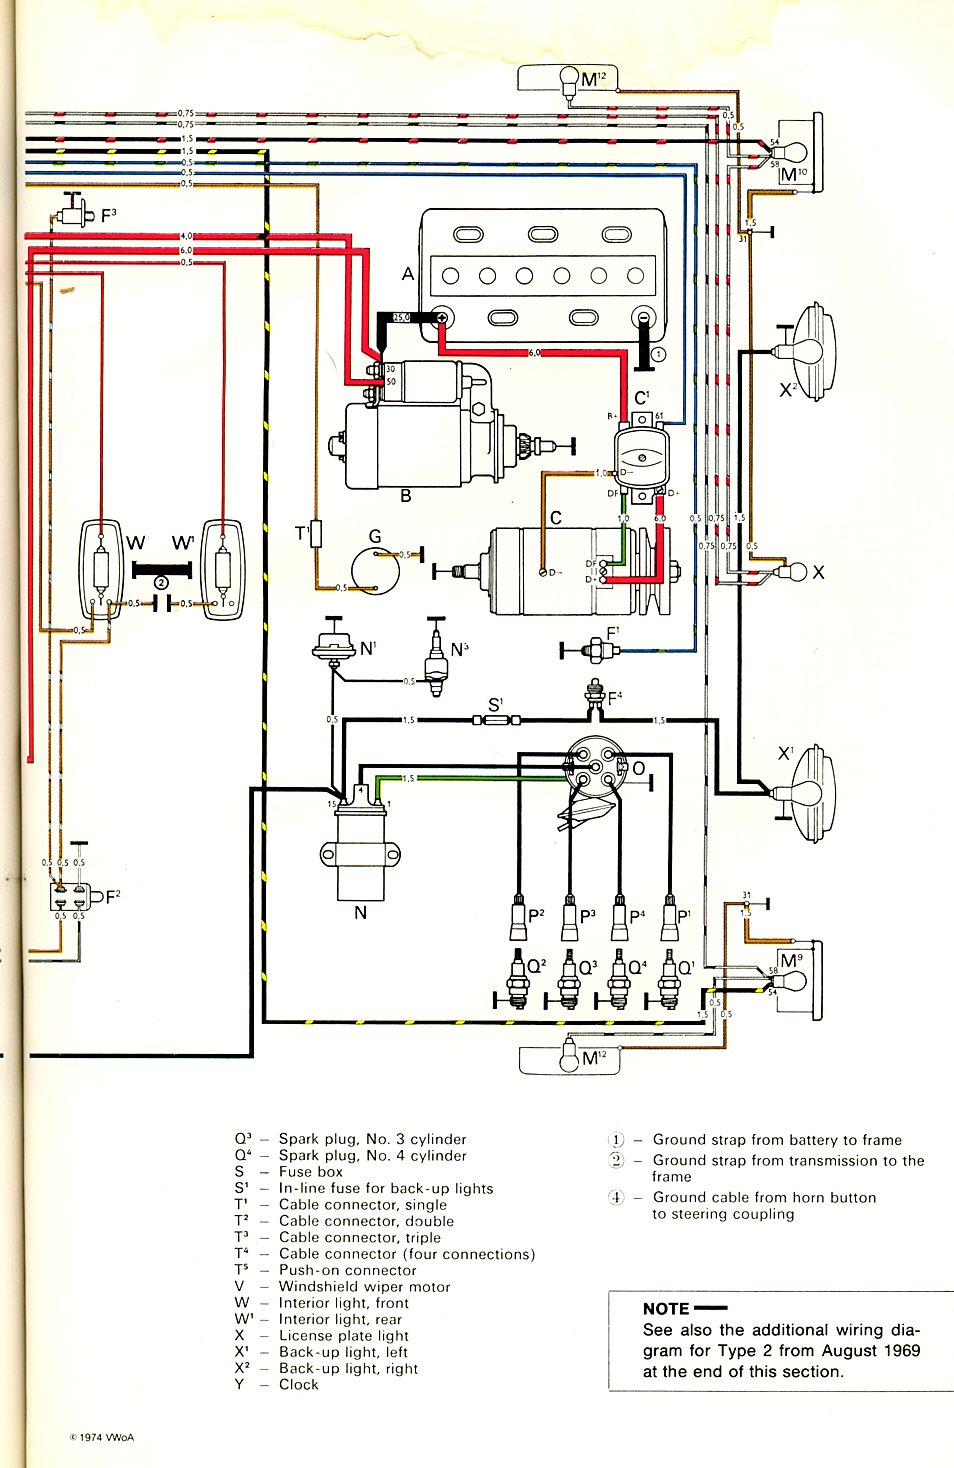 1970 vw beetle wiring schematic wiring diagrams and schematics vw wiring diagrams